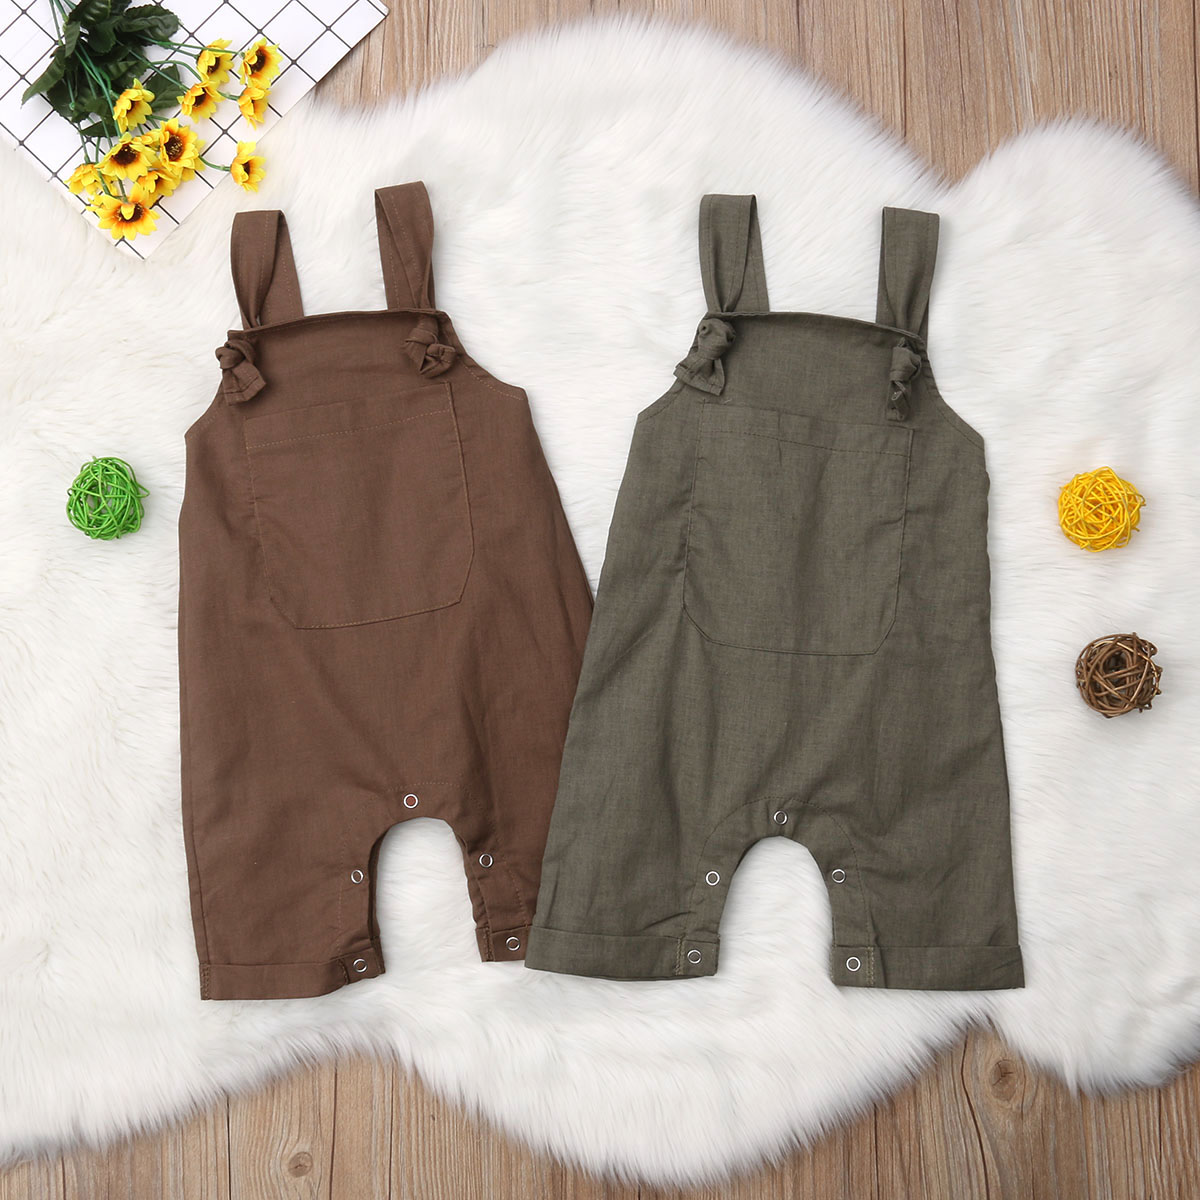 Fashion Cute Casual Toddler Girl Clothes Newborn Baby Boy   Rompers   Infant Pants Overall Outfit Clothes